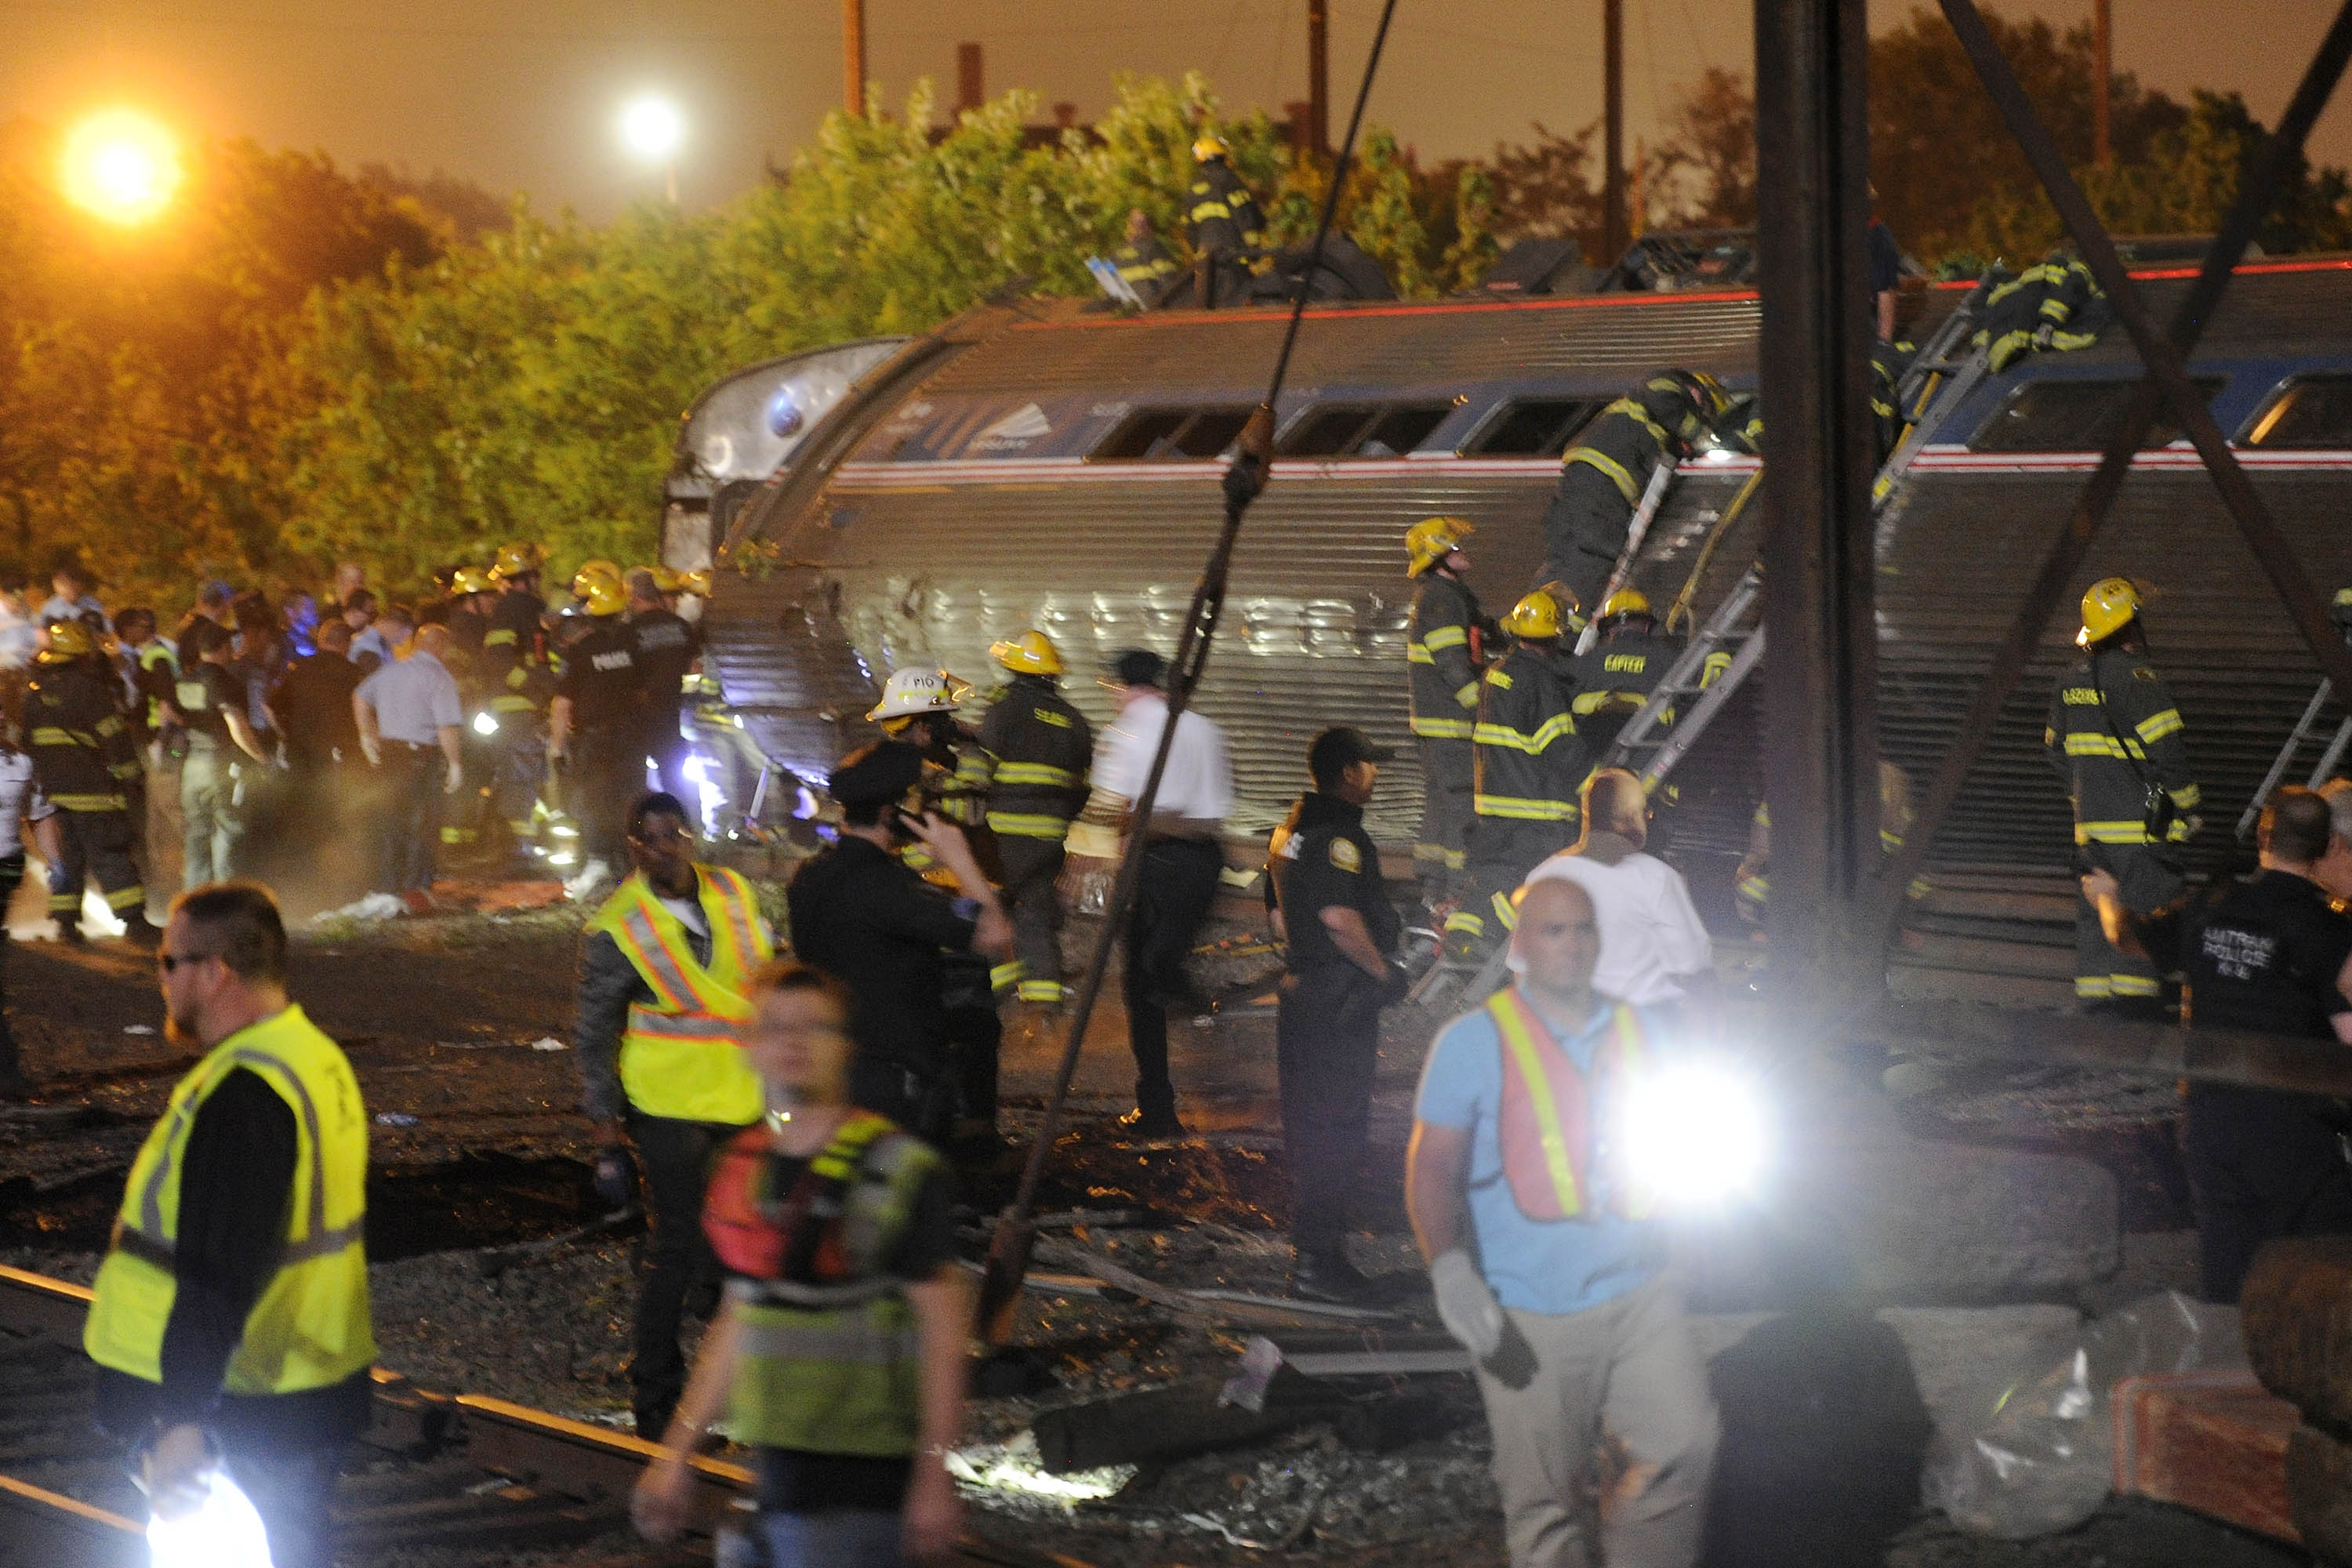 Six people were killed and scores more injured in the Amtrak crash of a northbound train in Port Richmond on Tuesday, May 12, 2015, in Philadelphia. (Tom Gralish/Philadelphia Inquirer/TNS)